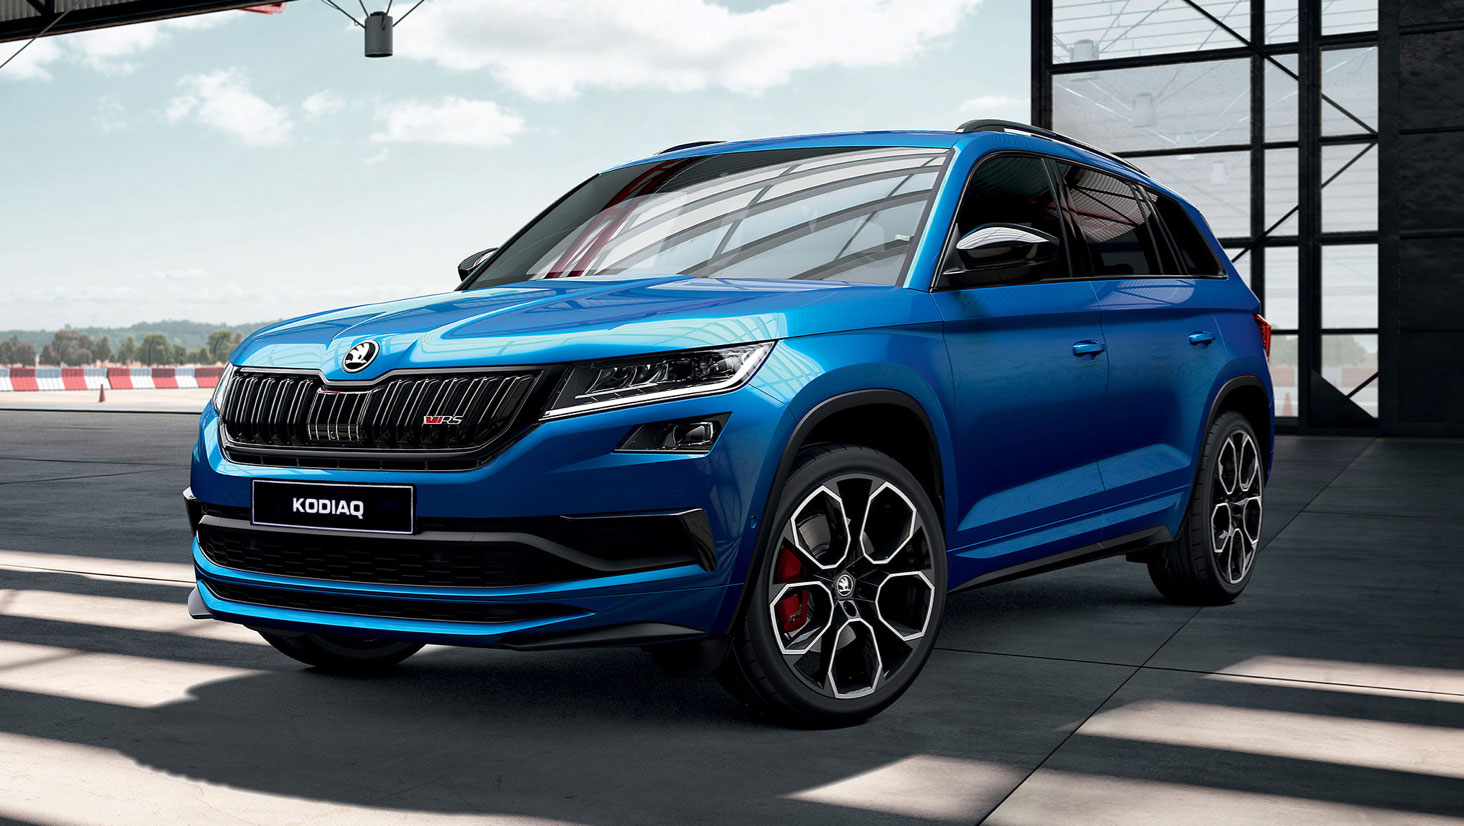 KODIAQ SUV <br>PERFORMANCE THAT'S NOT FOR SHOW